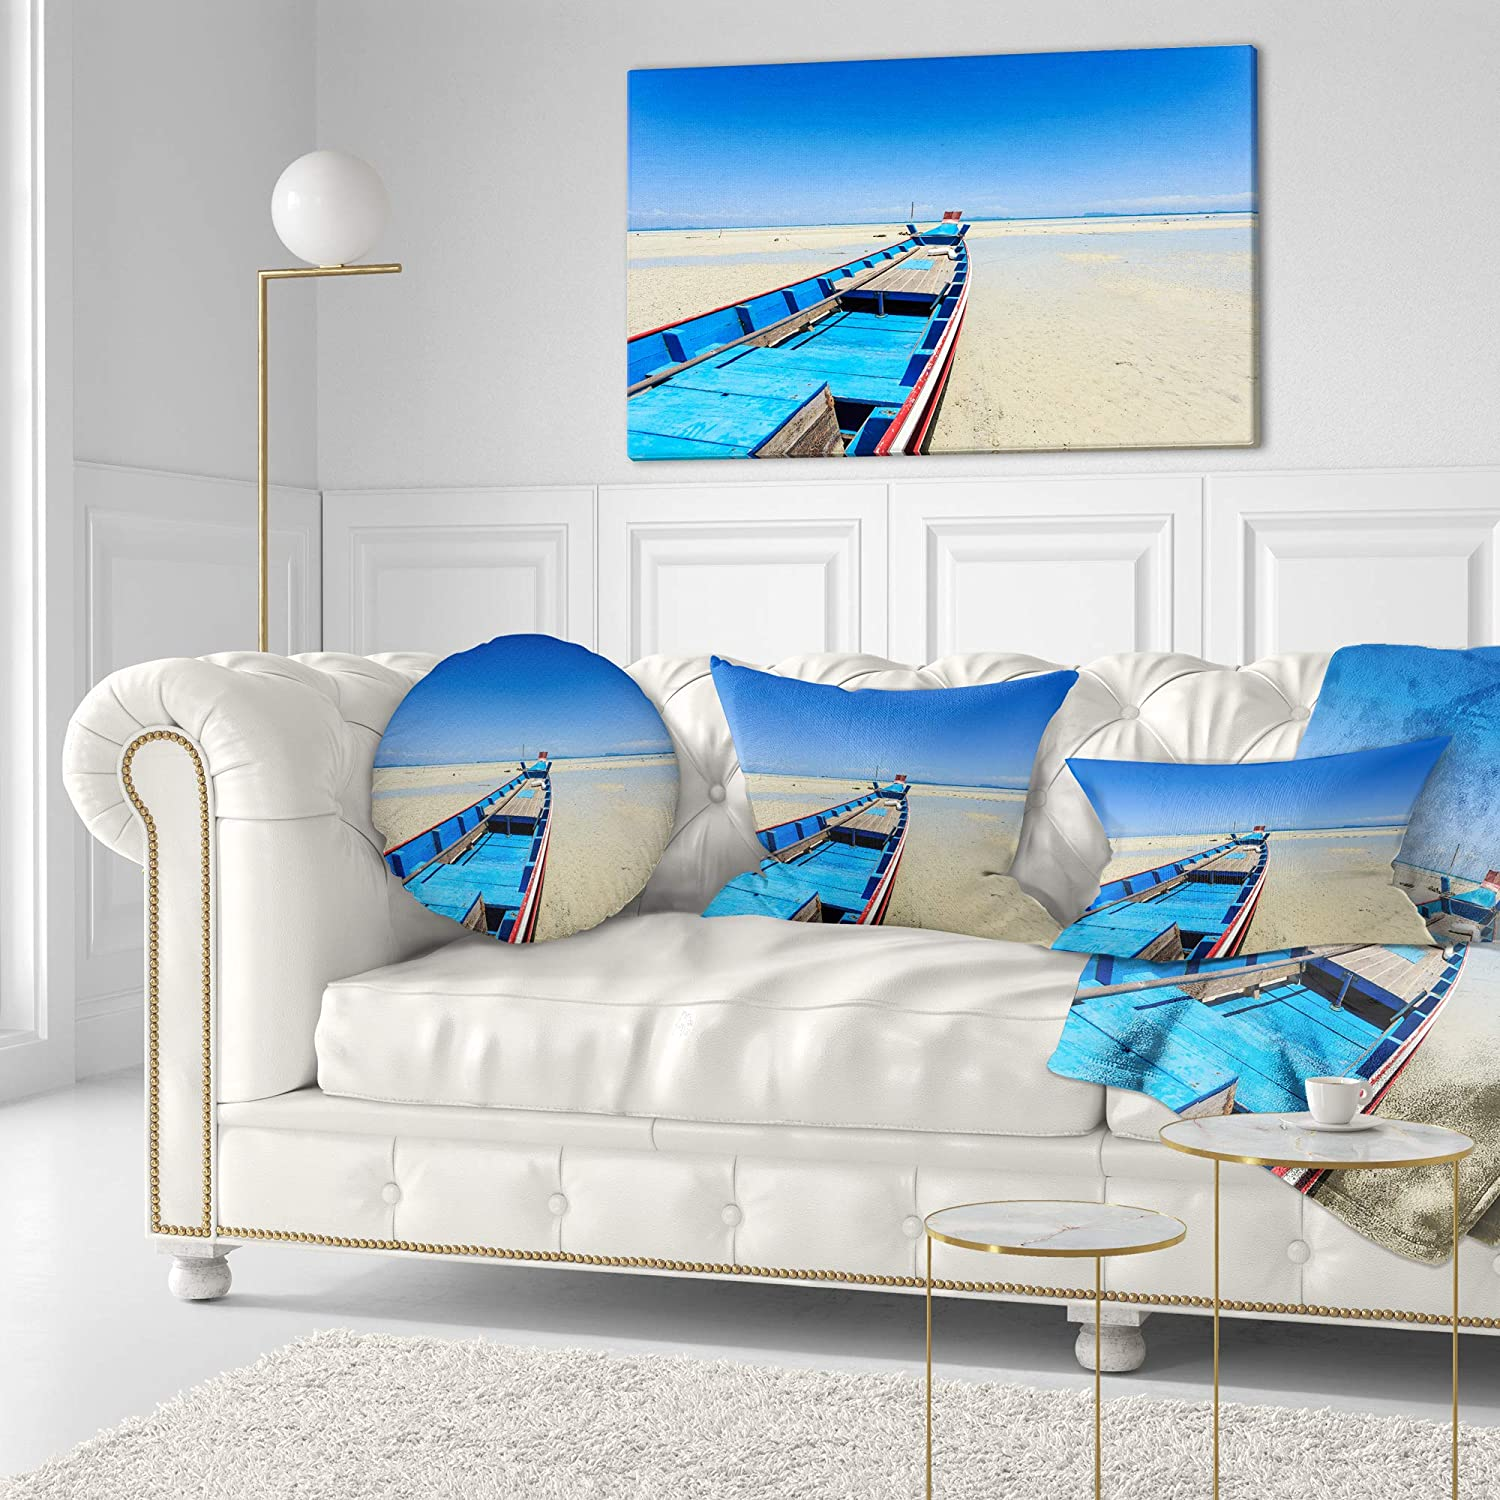 Designart CU14724-20-20-C Long Tail Boat Stand at The Beach Seashore Round Cushion Cover for Living Room Sofa Throw Pillow 20